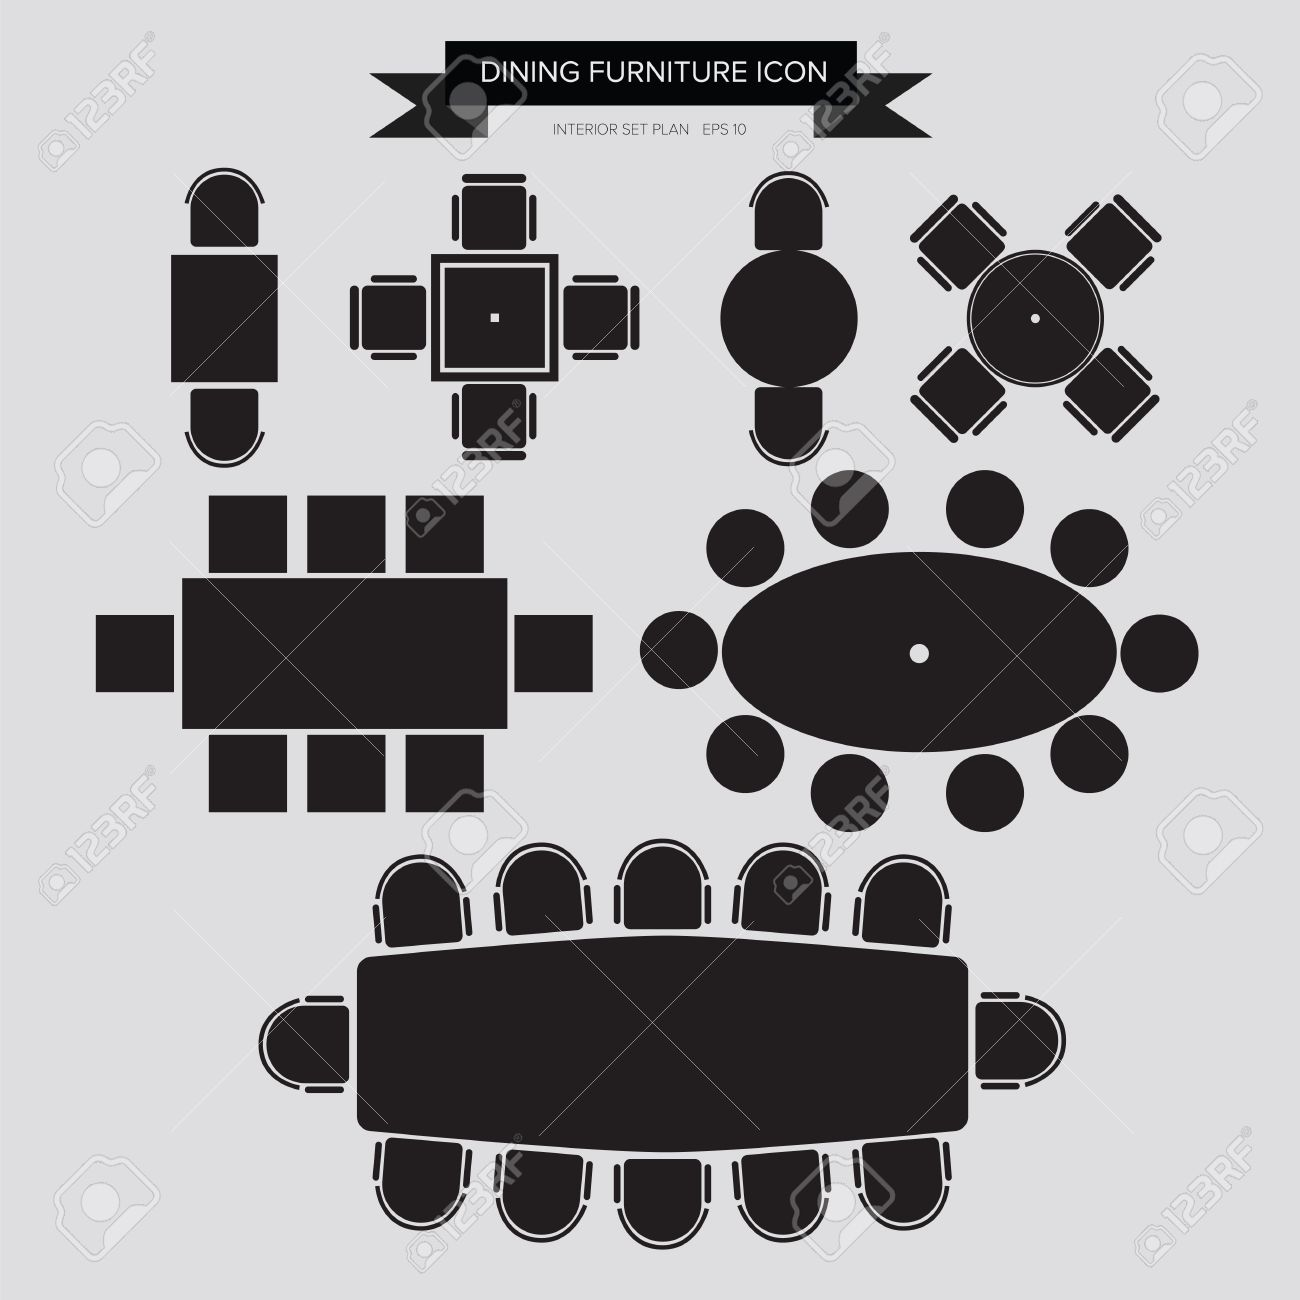 Table and chairs top view - Dinning Furniture Icon Top View For Interior Plan Stock Vector 31591936